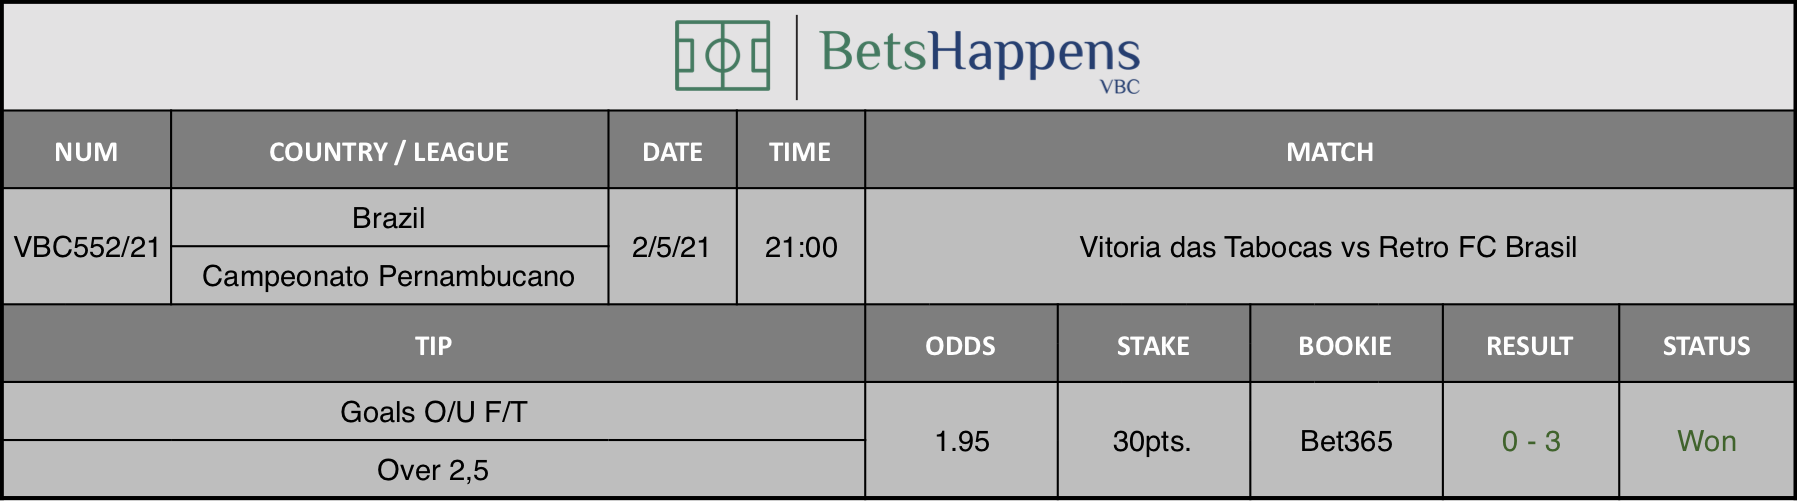 Results of our tip for the Vitoria das Tabocas vs Retro FC Brasil  match where Goals O/U F/T Over 2,5 is recommended.